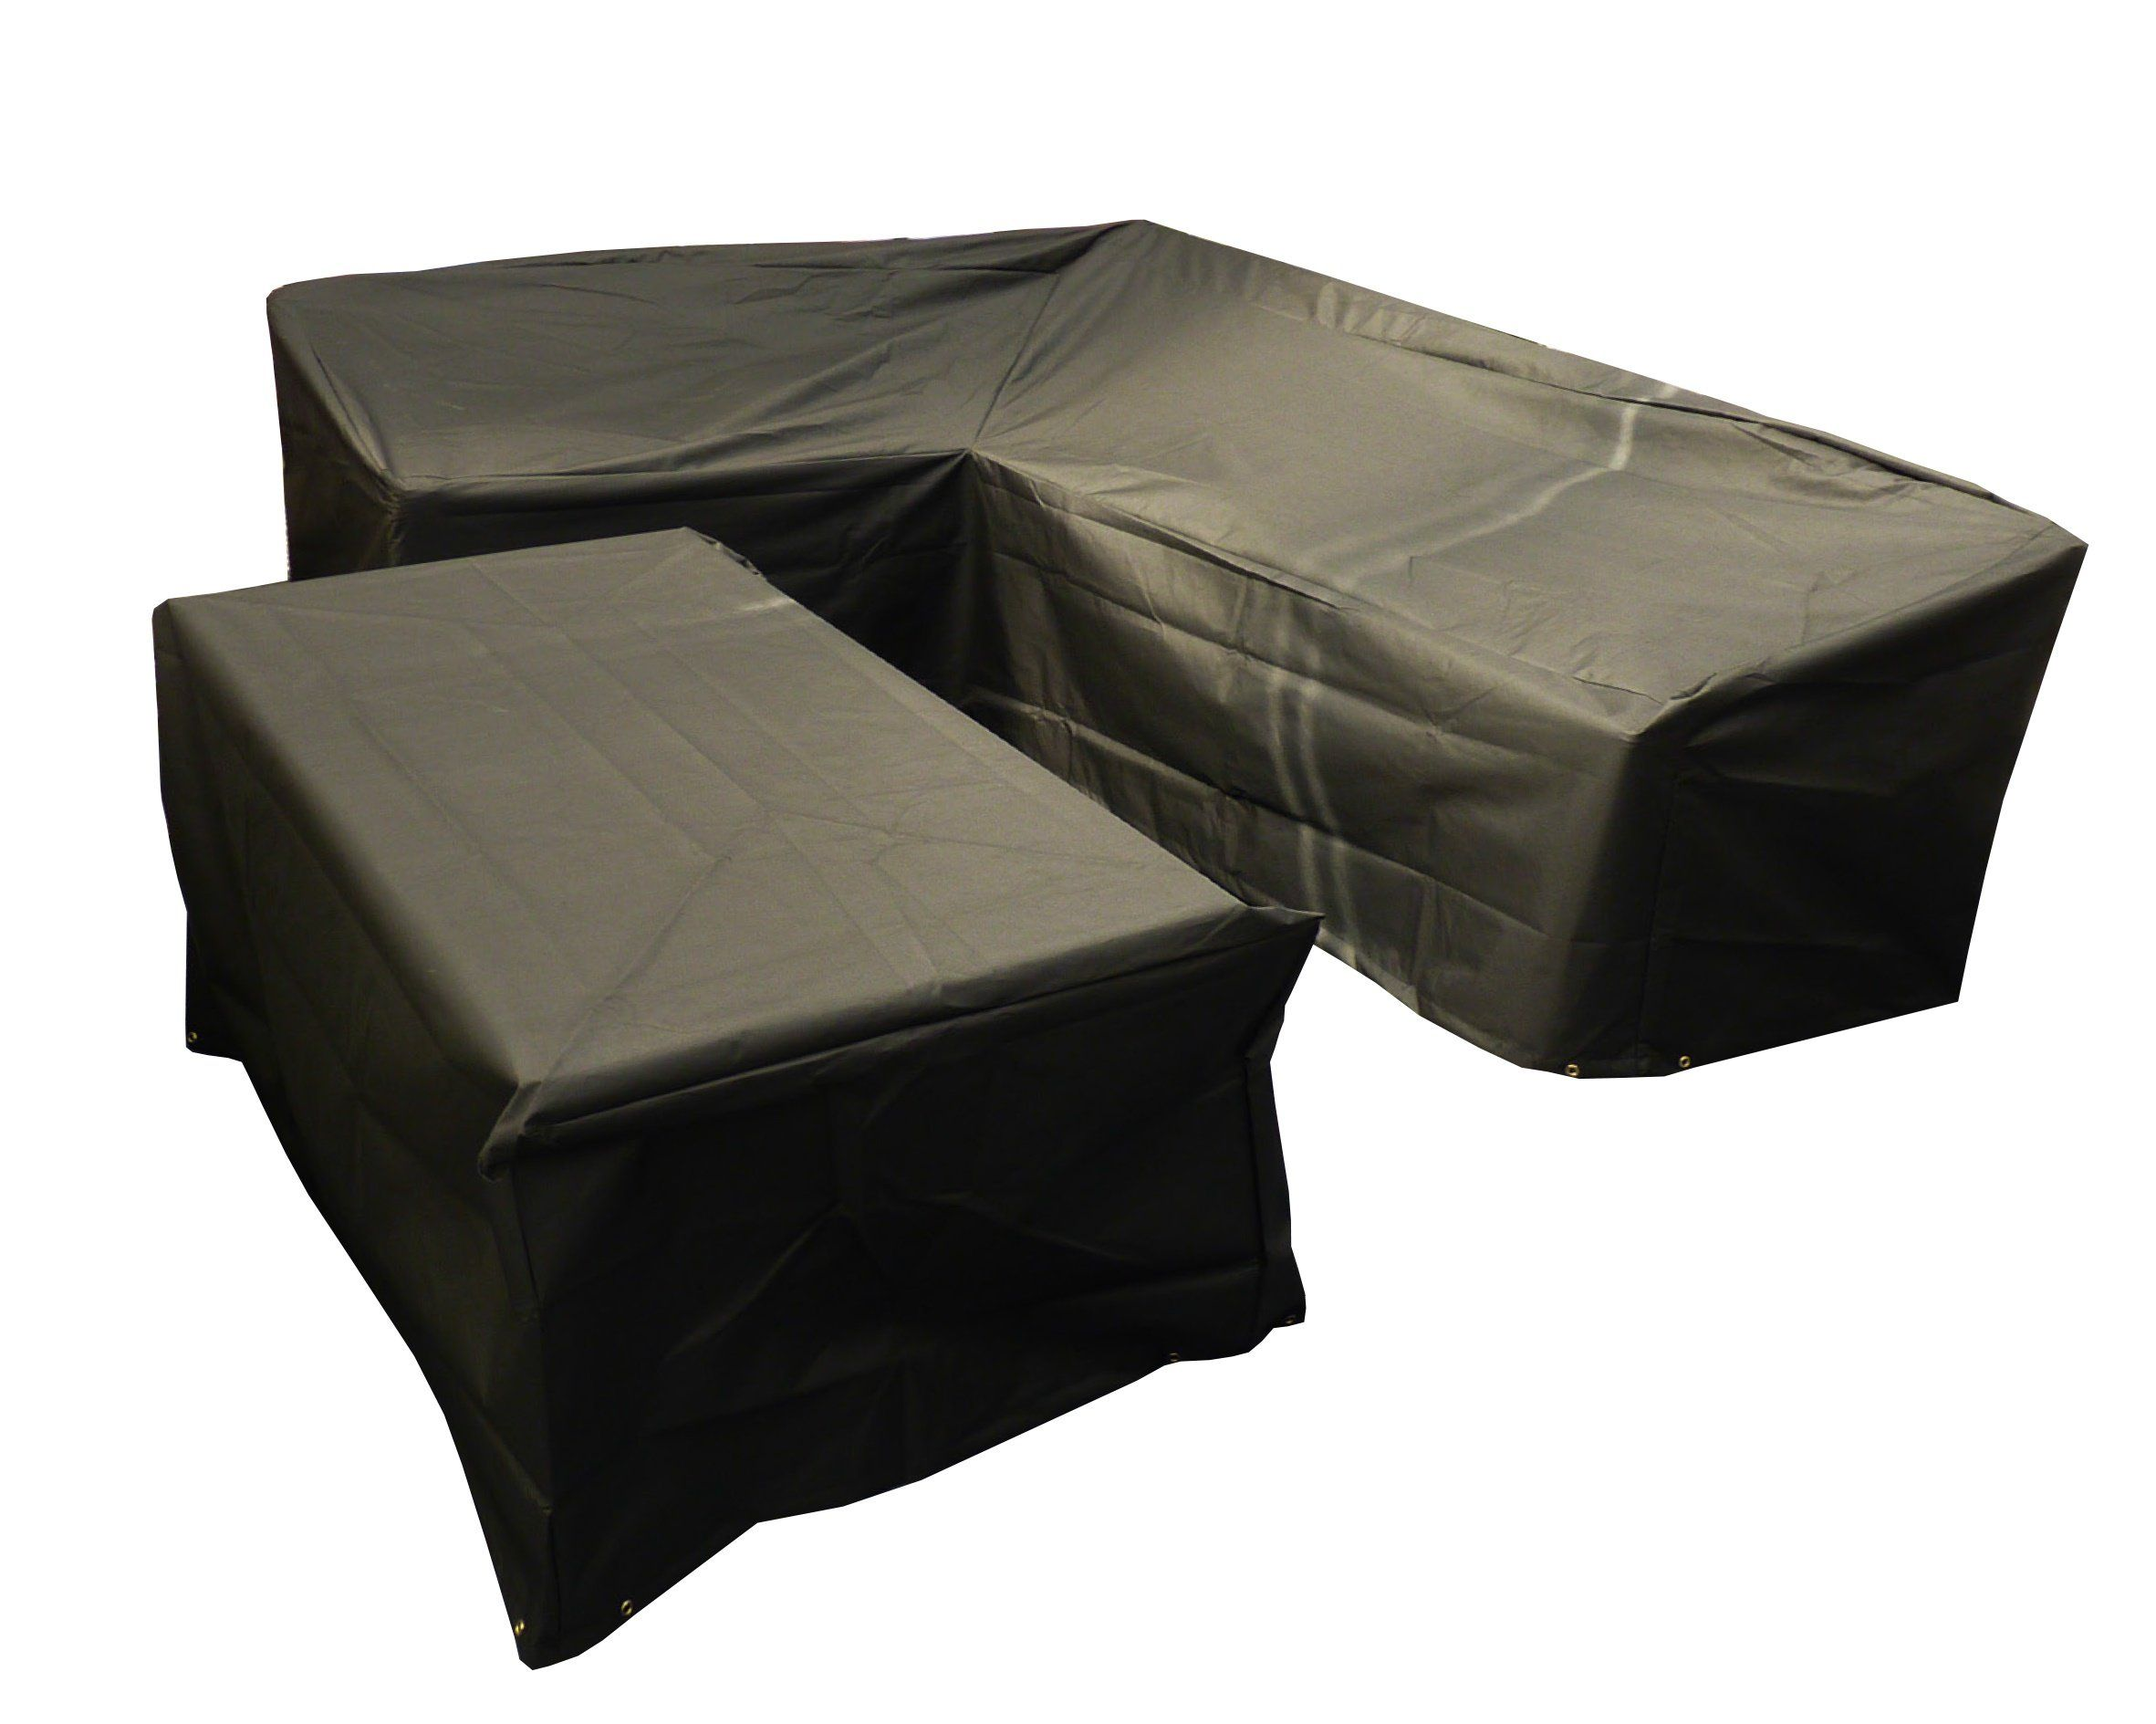 Bosmere M668 Large L Shape Right Side Long Dining Set Cover Black Set Cover Patio Furniture Covers Garden Sofa